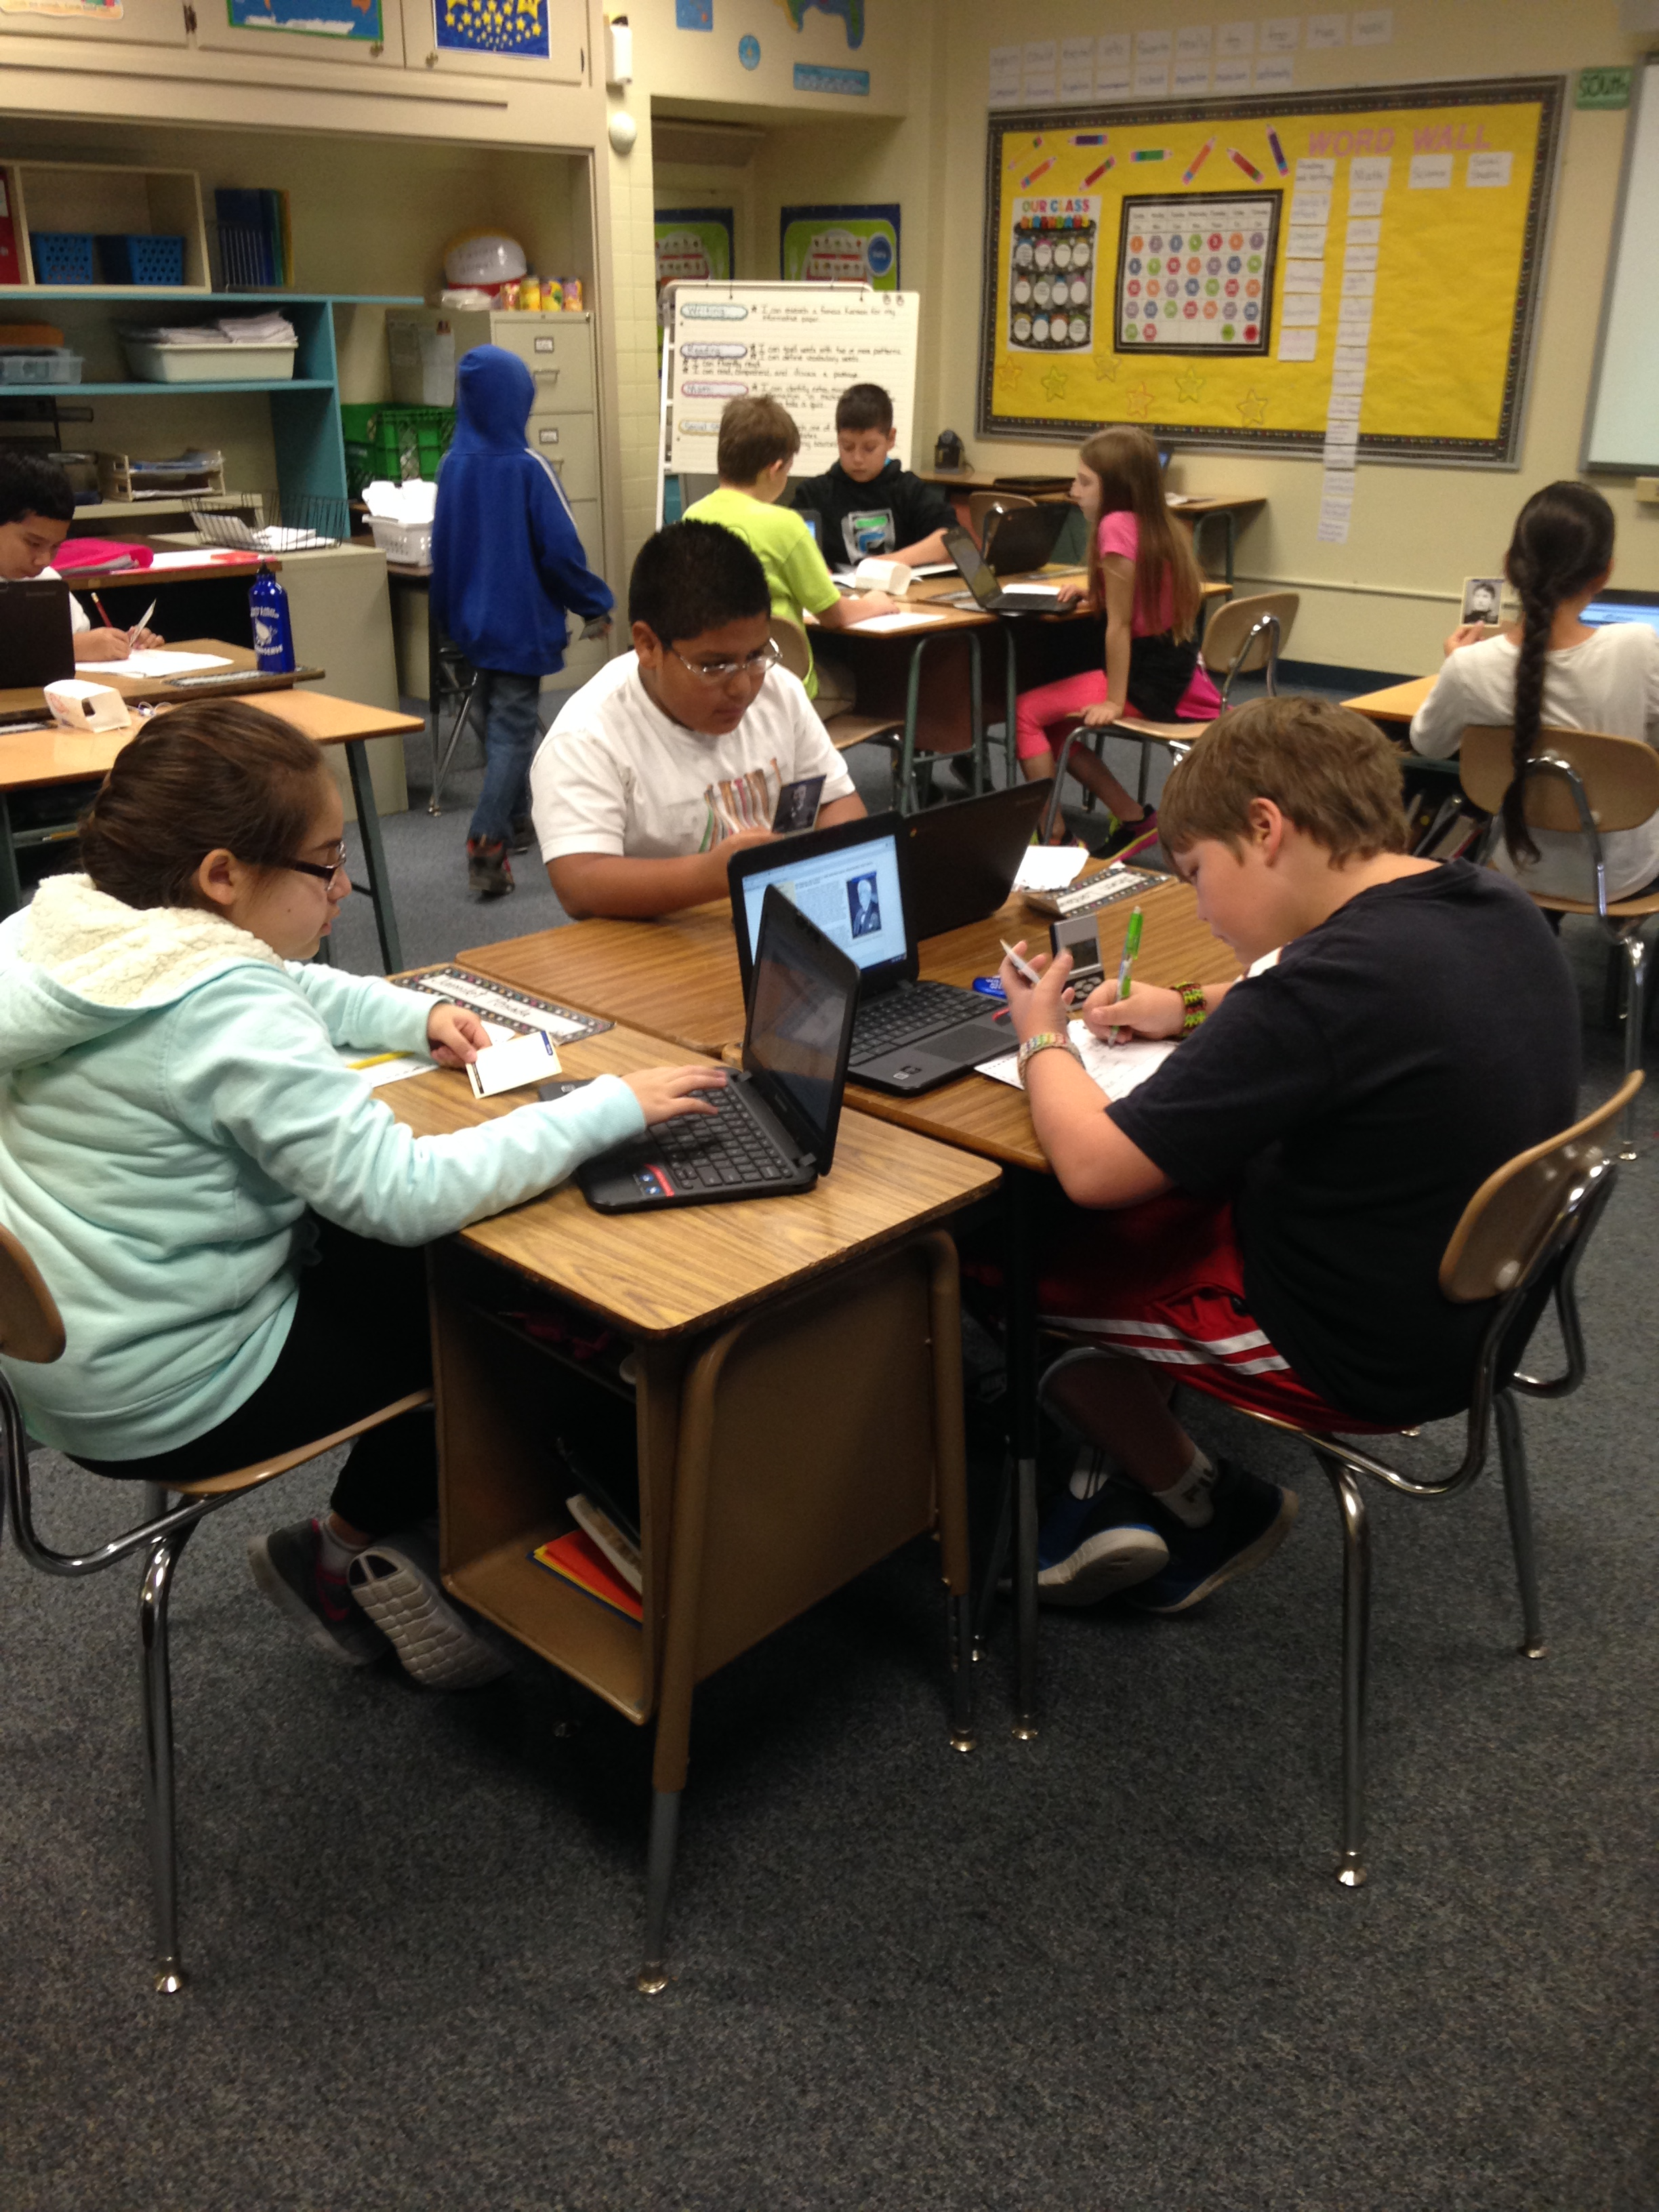 Researching the famous Kansans as a class project